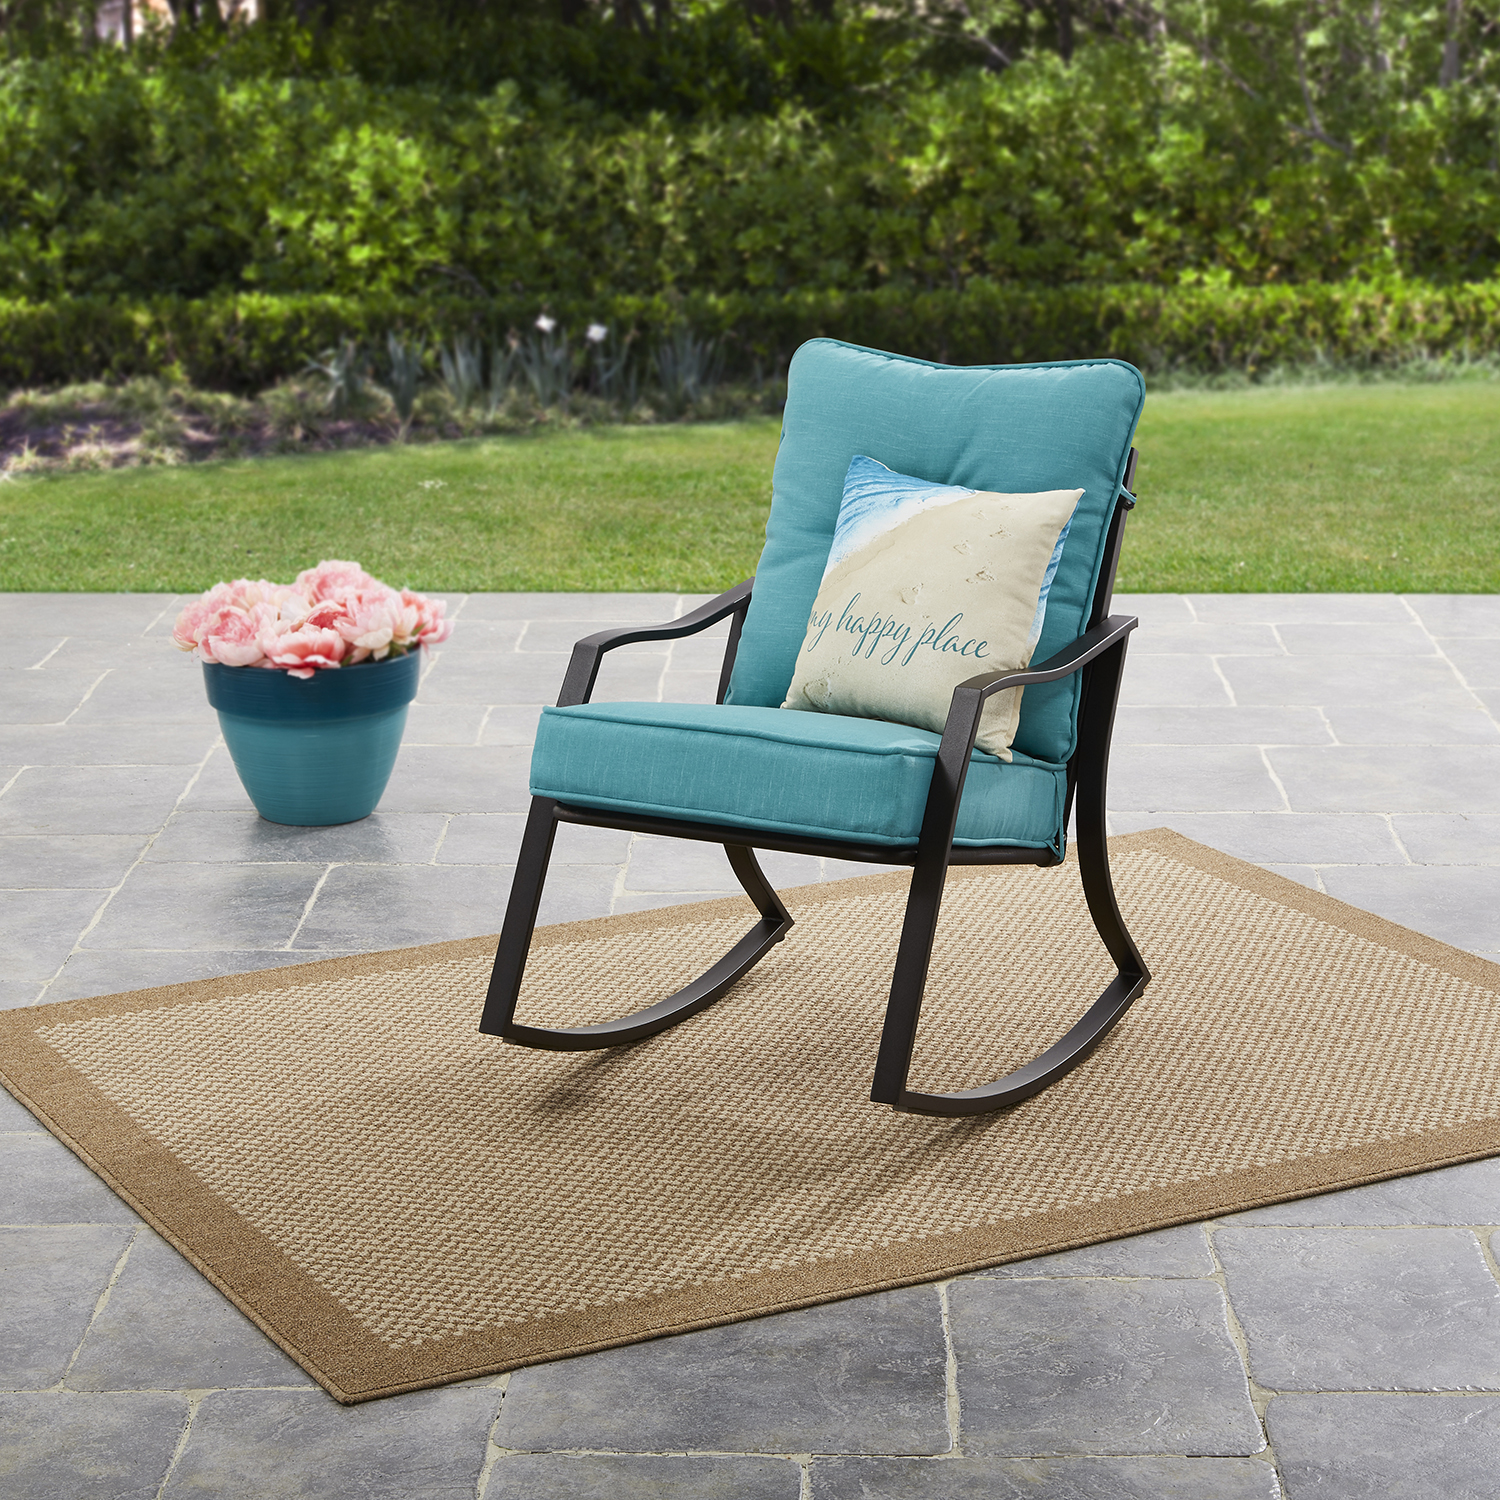 mainstays forest hills outdoor rocking chair - teal - walmart com